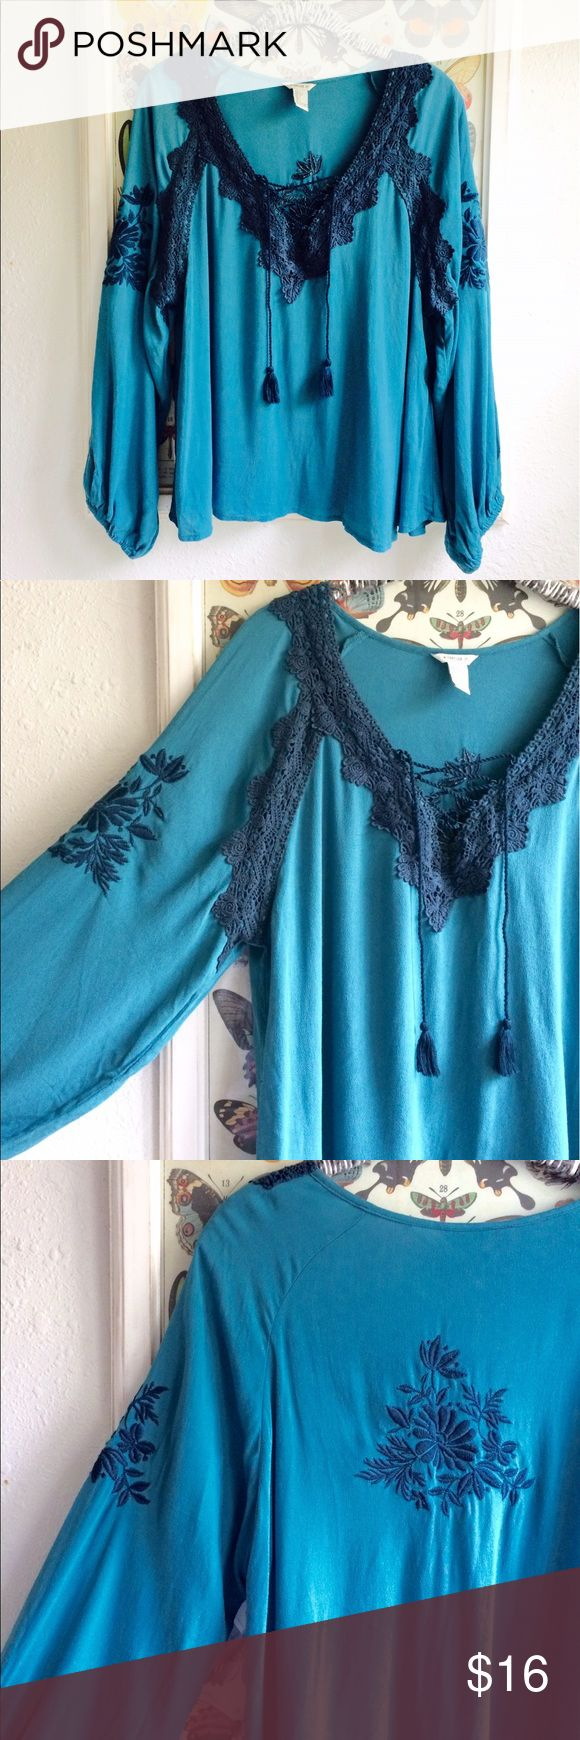 Beautiful teal bohemian blouse Beautiful bohemian blouse. With stitched detailing. So pretty, never worn. Perfect condition! Large, bit could fit smaller sizes.. Forever 21 runs small and I bought a large for extra flowiness :) Forever 21 Tops Blouses